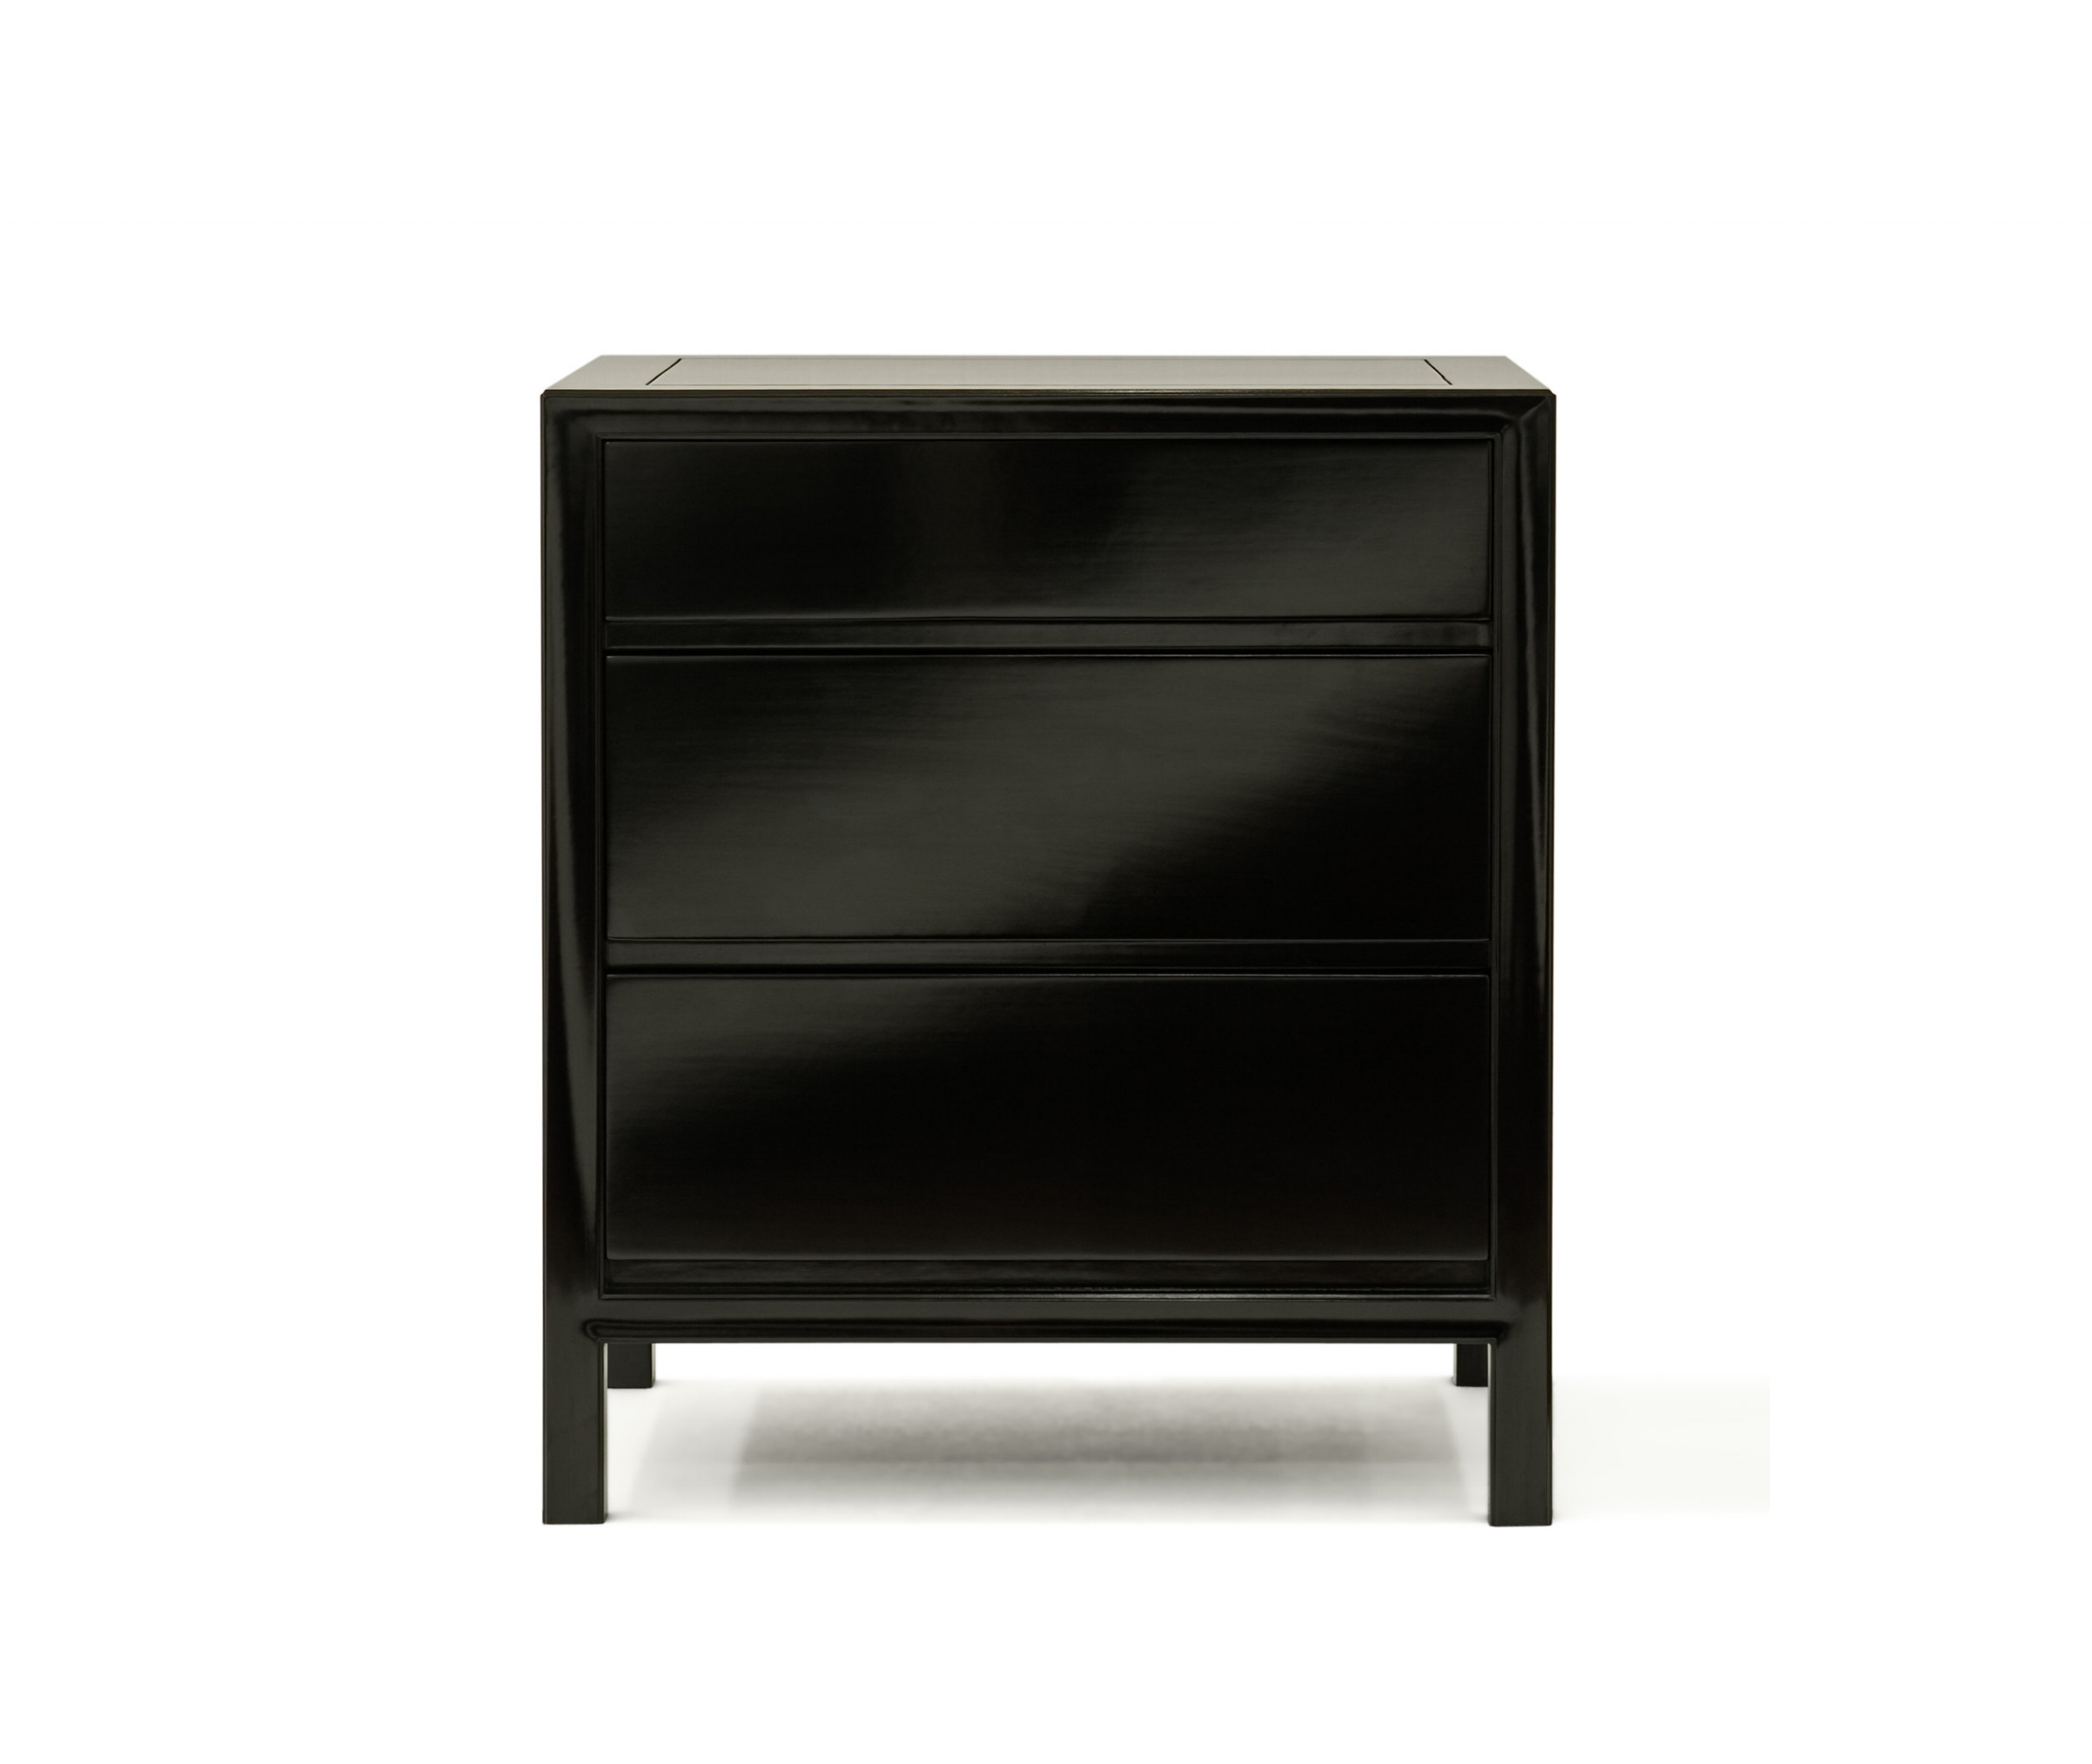 ....Ming Style Chinese furniture : chest of drawers..明式中式家具:抽屉柜....